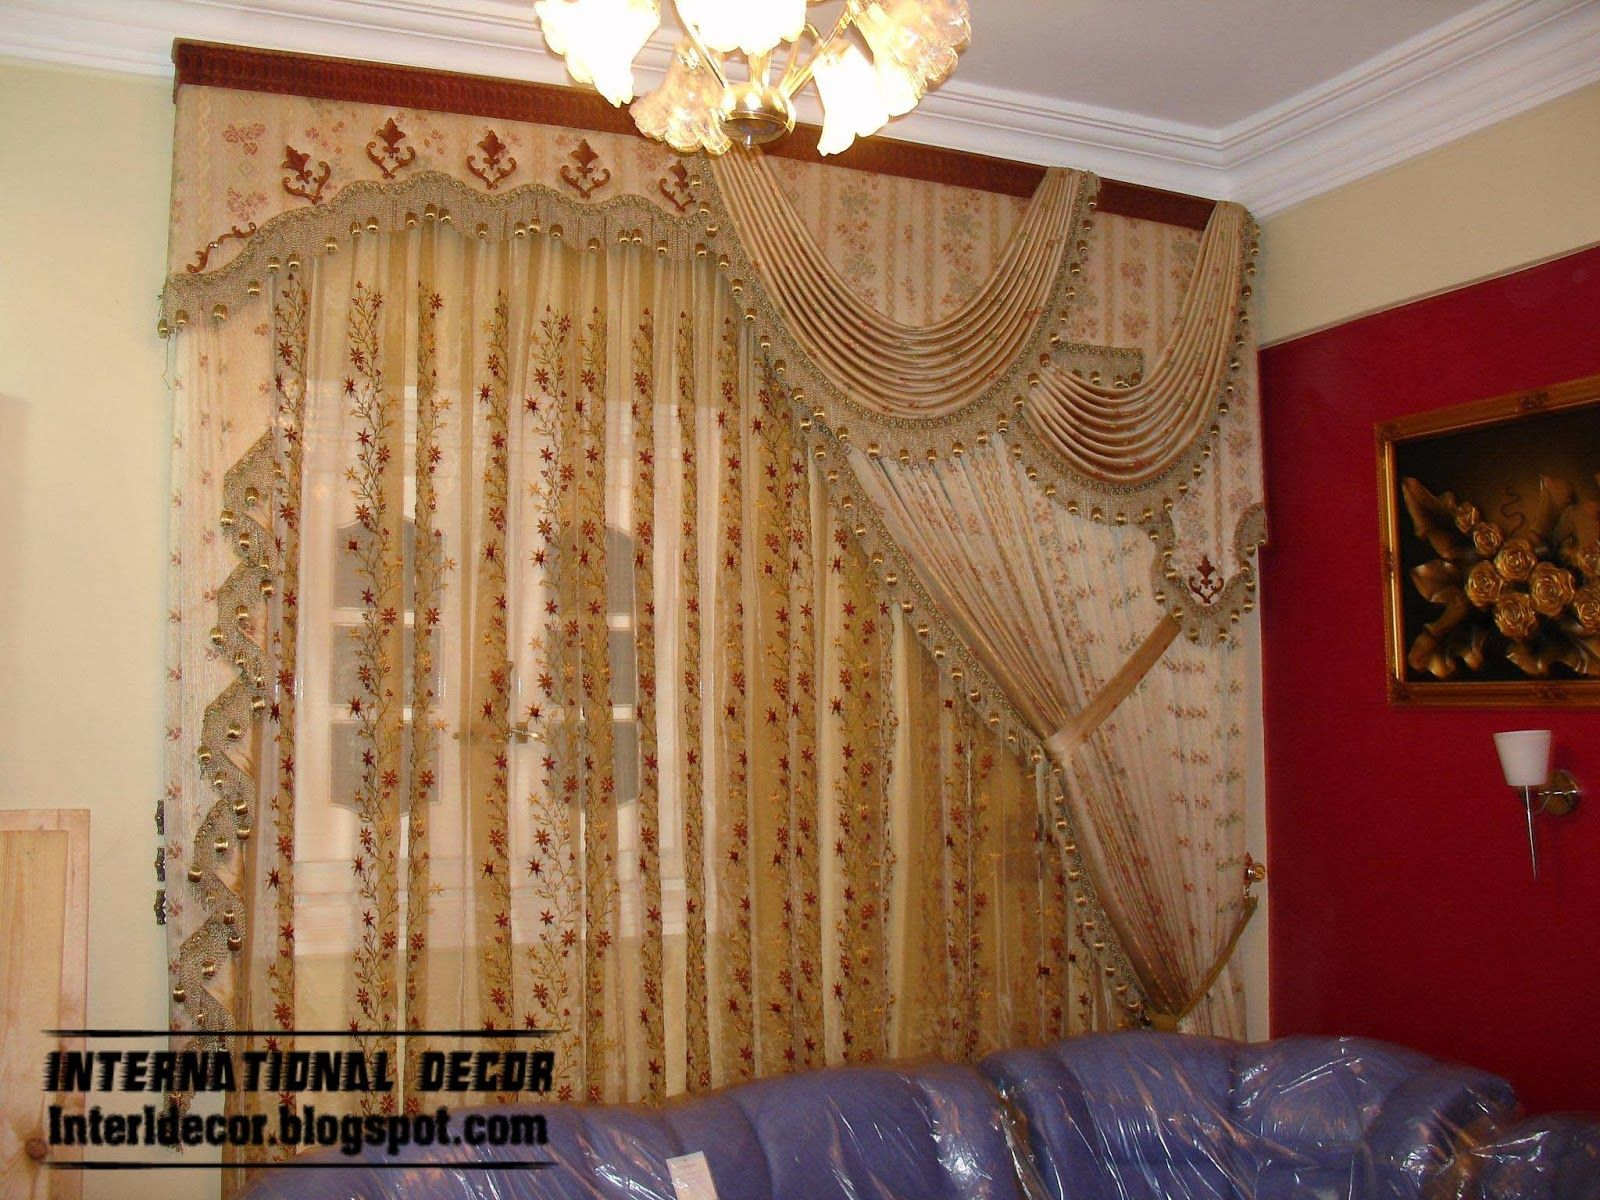 Curtains designs 2016 for living room - Luxury Drapes Luxury Drapes Curtain Design Bright Style For Living Room 2014